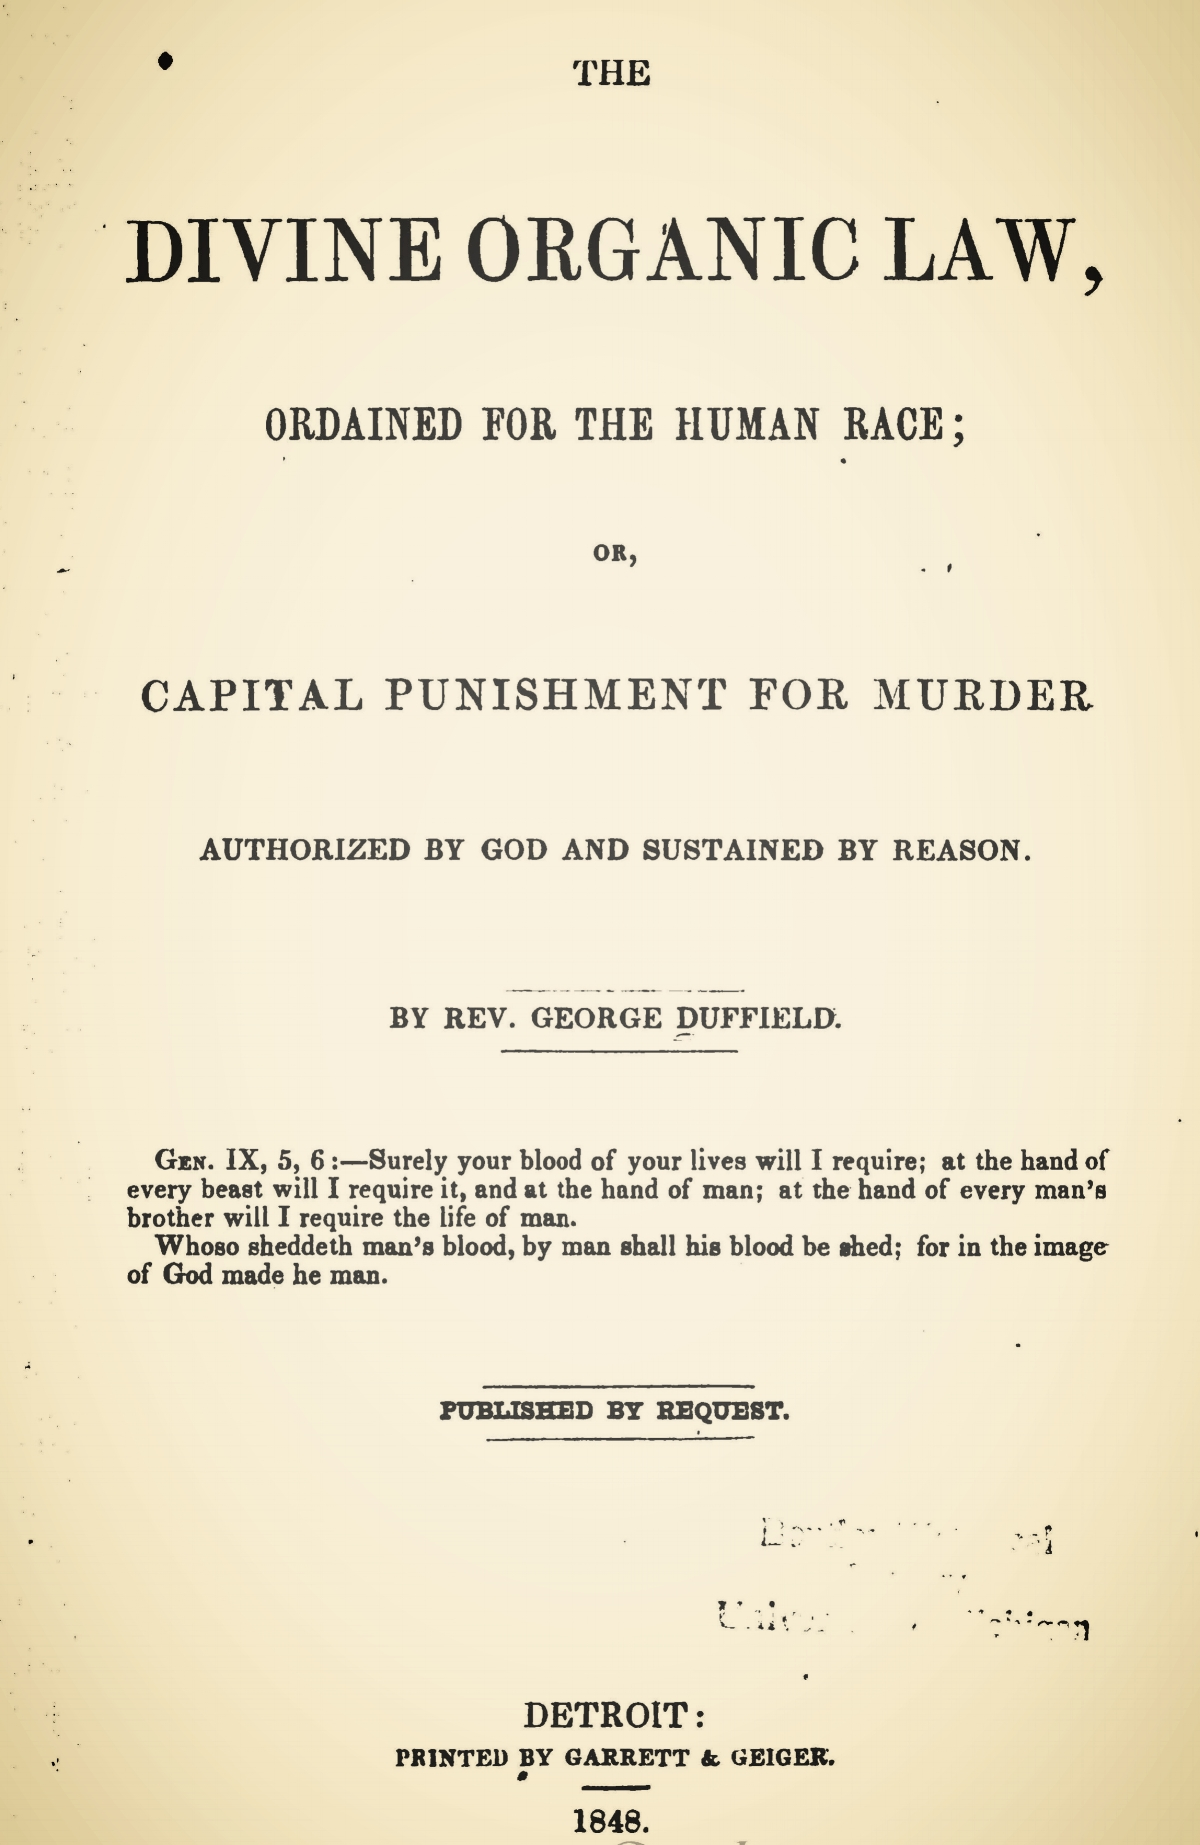 Duffield, IV, George, The Divine Organic Law Title Page.jpg